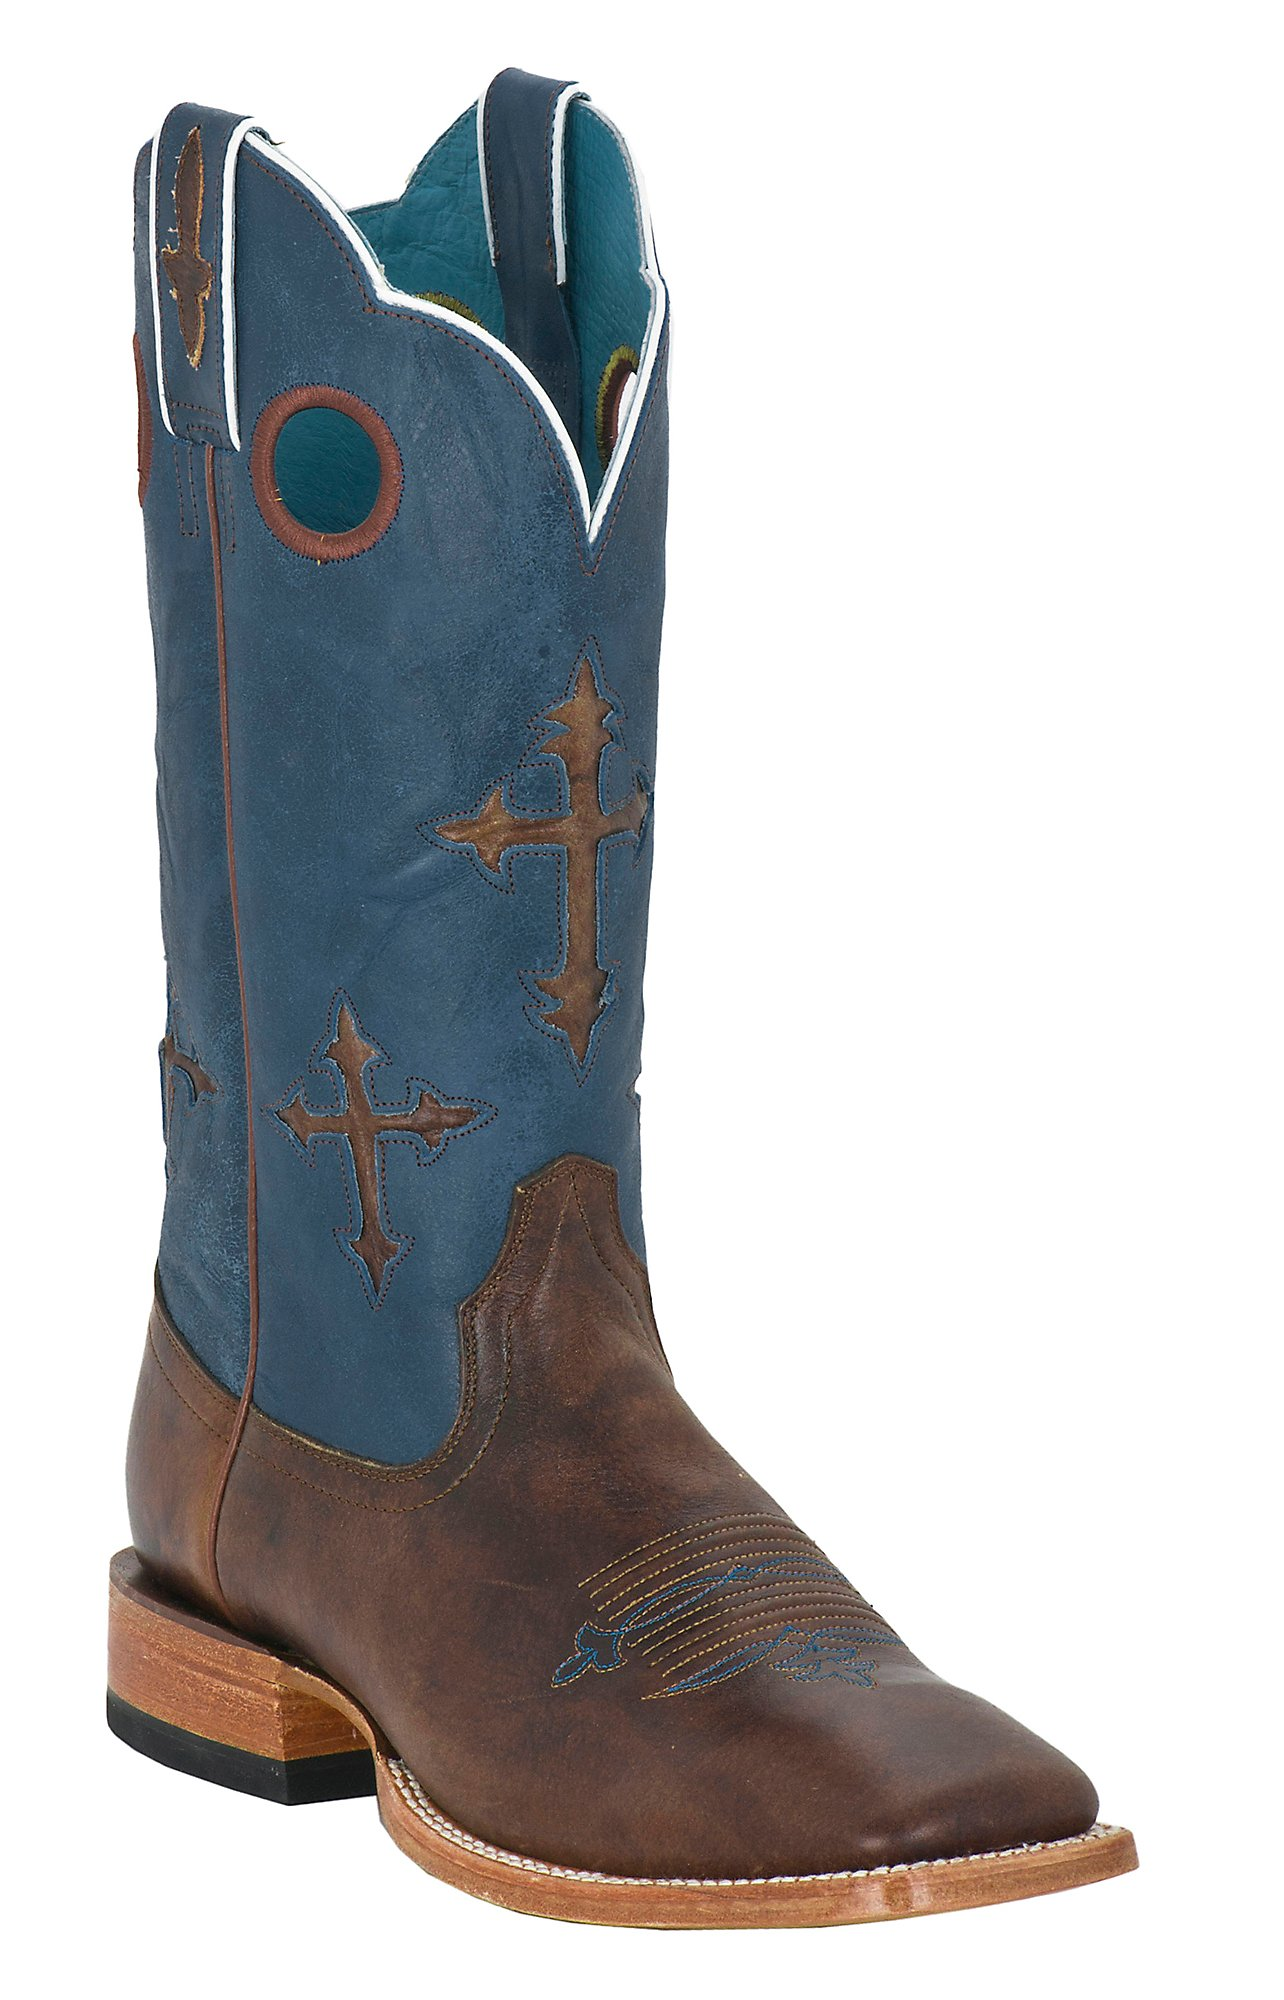 Ariat Men's Ranchero Brown w/ Crosses on Blue Top Square Toe ...